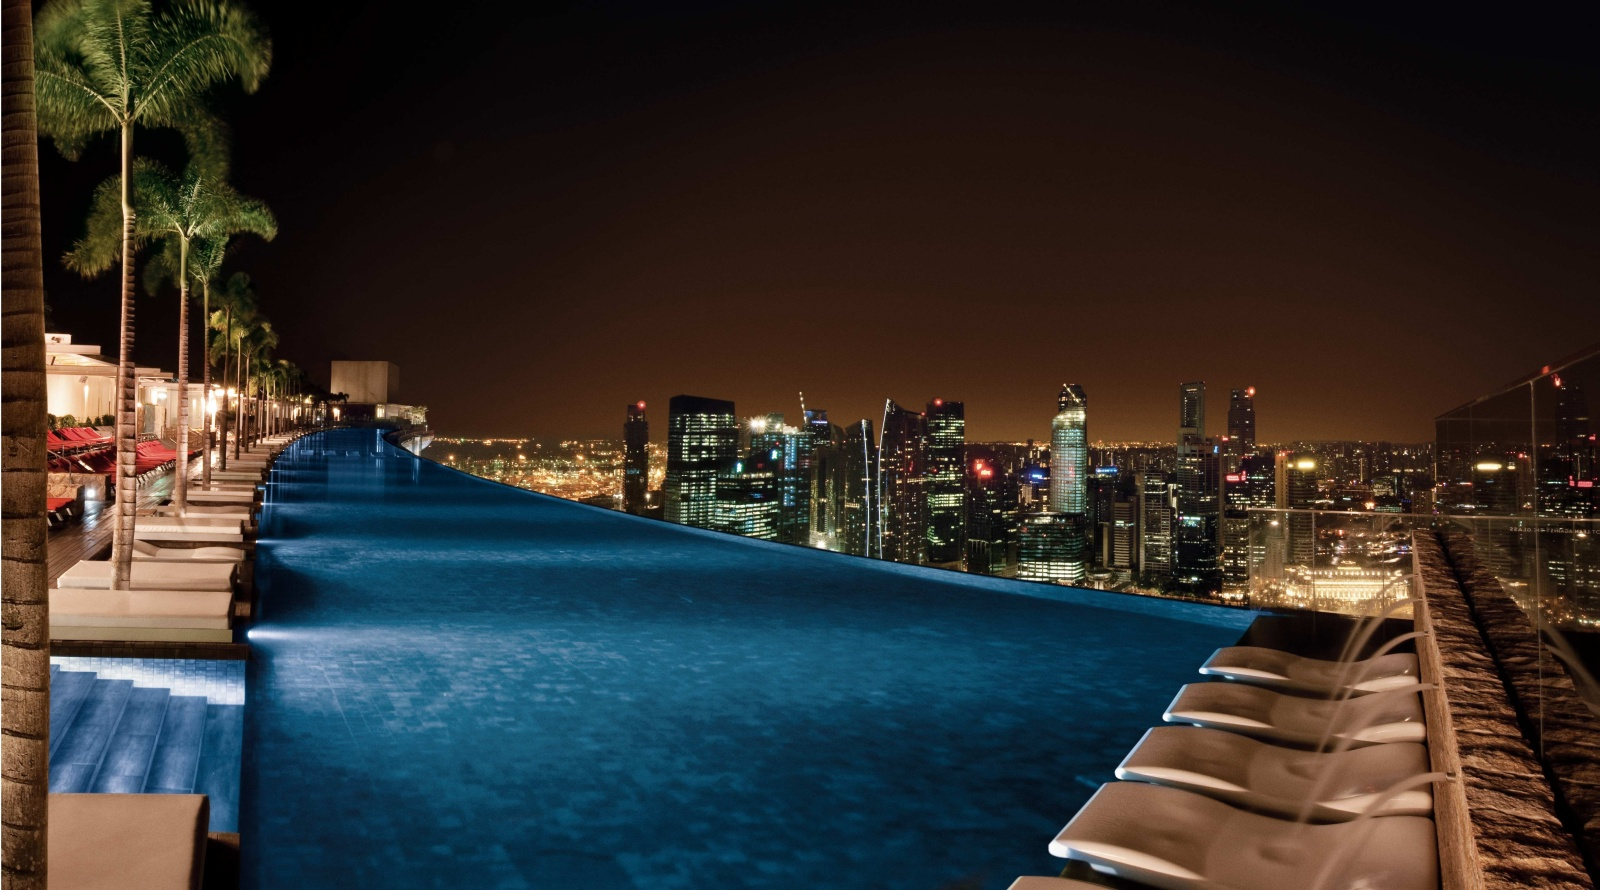 Marina bay sands - Singapore marina bay sands infinity pool ...